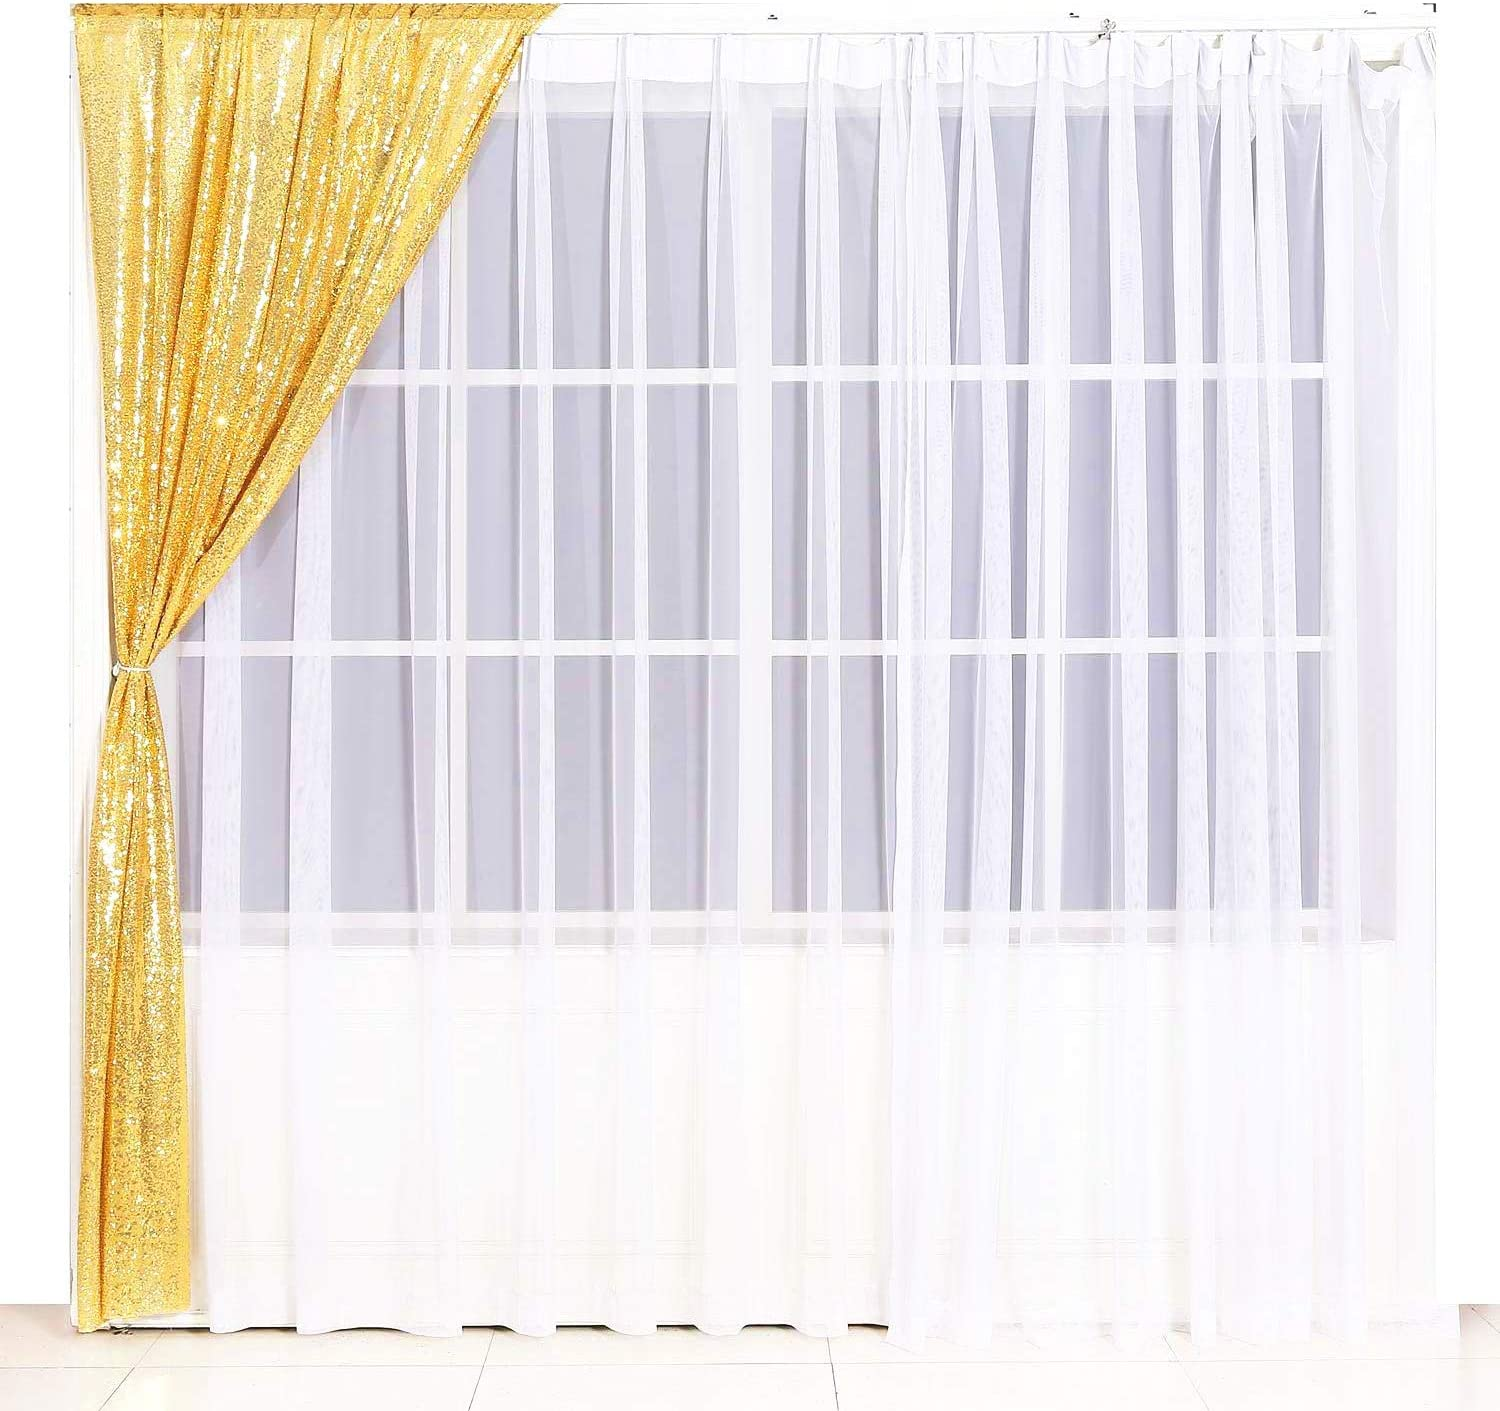 Gold Satin Poise3EHome 2 Panels 2FtX8Ft Not See Through Sequin Photography Backdrop Glittery Thick Satin Wedding Party Sequin Curtain